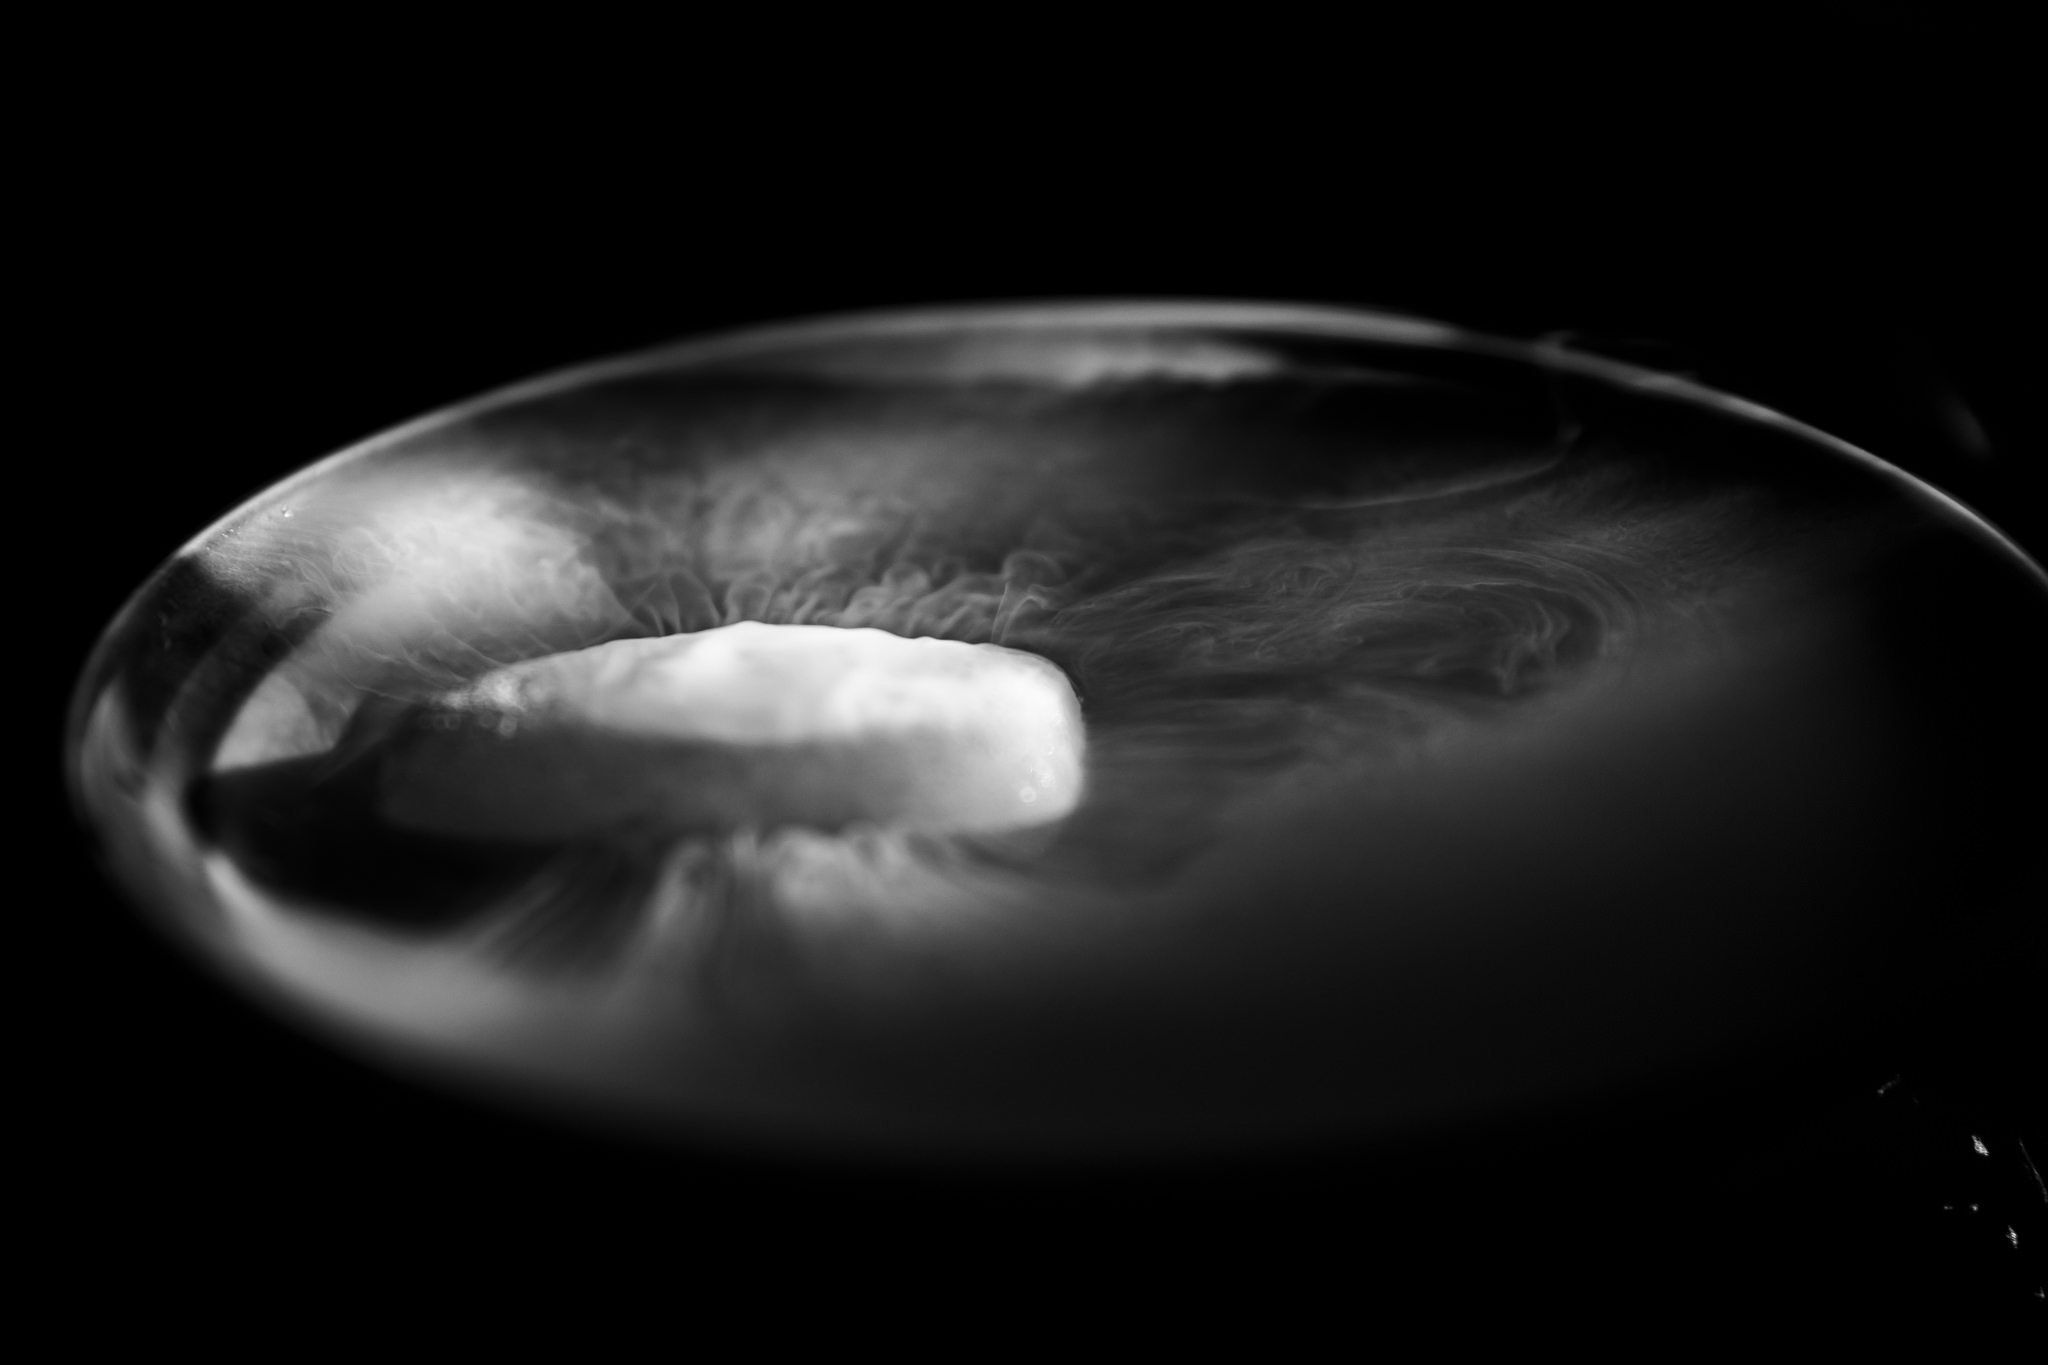 Black and White image of dry ice sublimating.